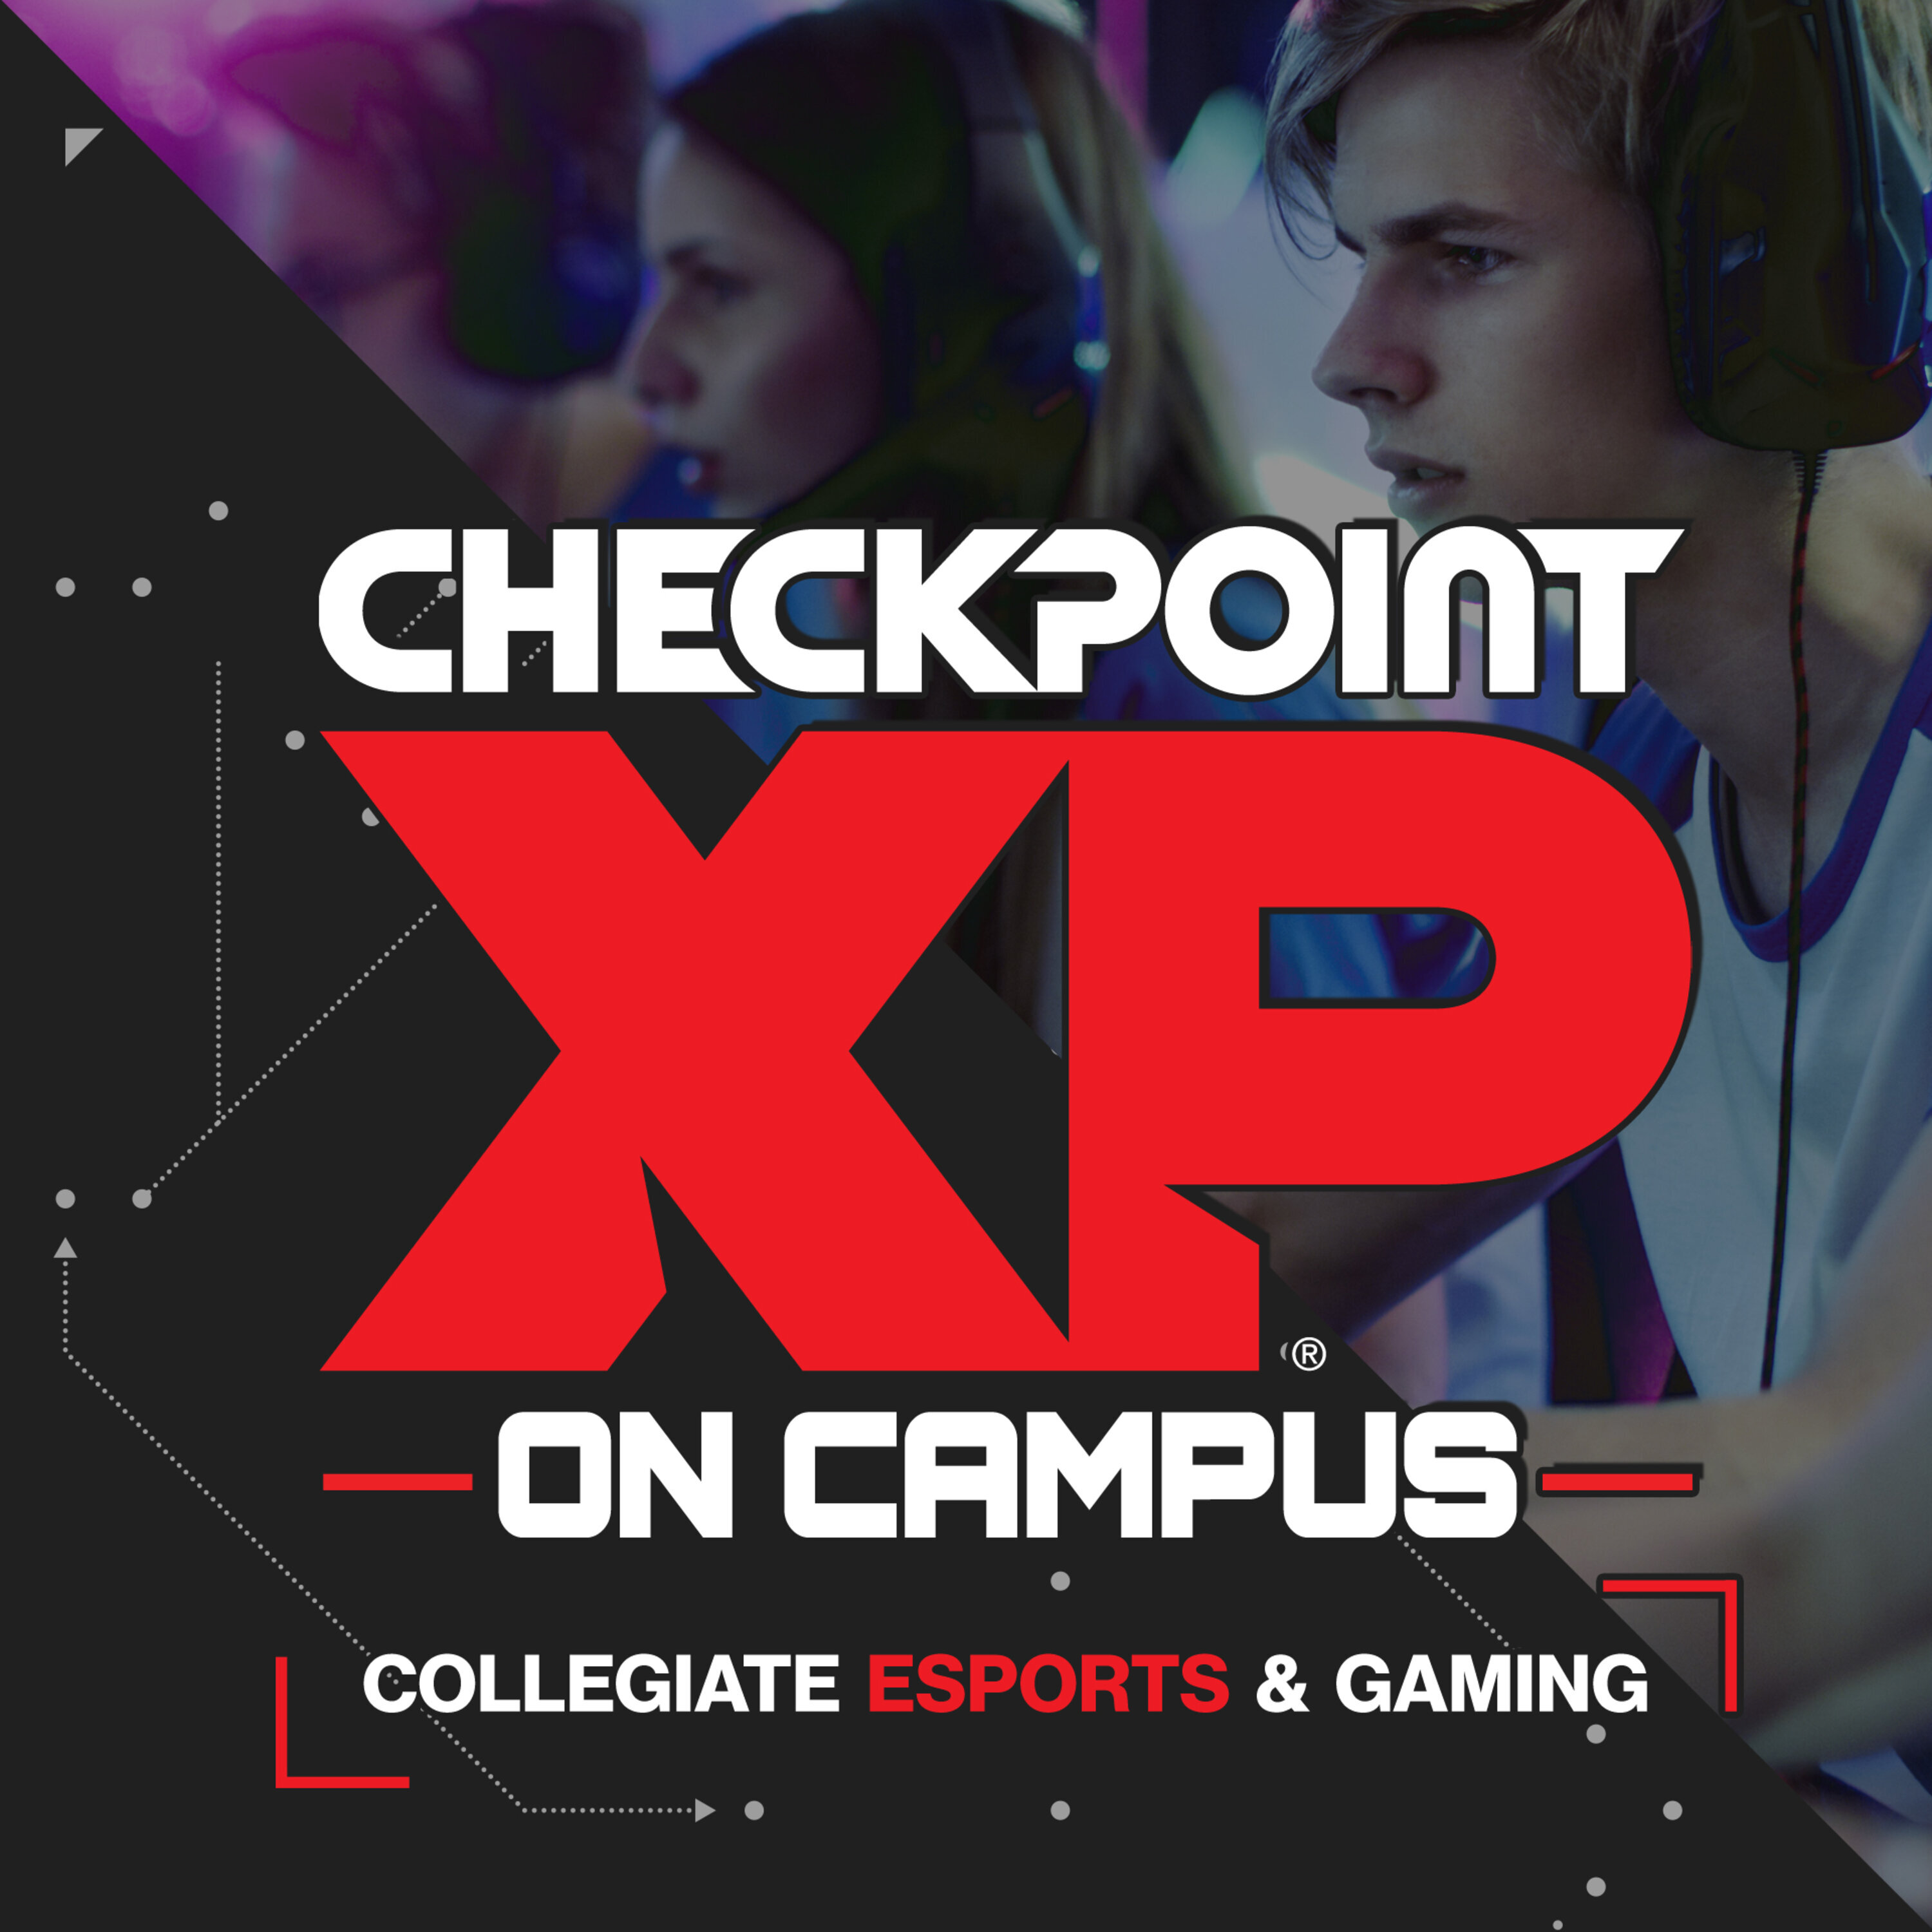 Top College Esports Programs To Watch - Fall 2020